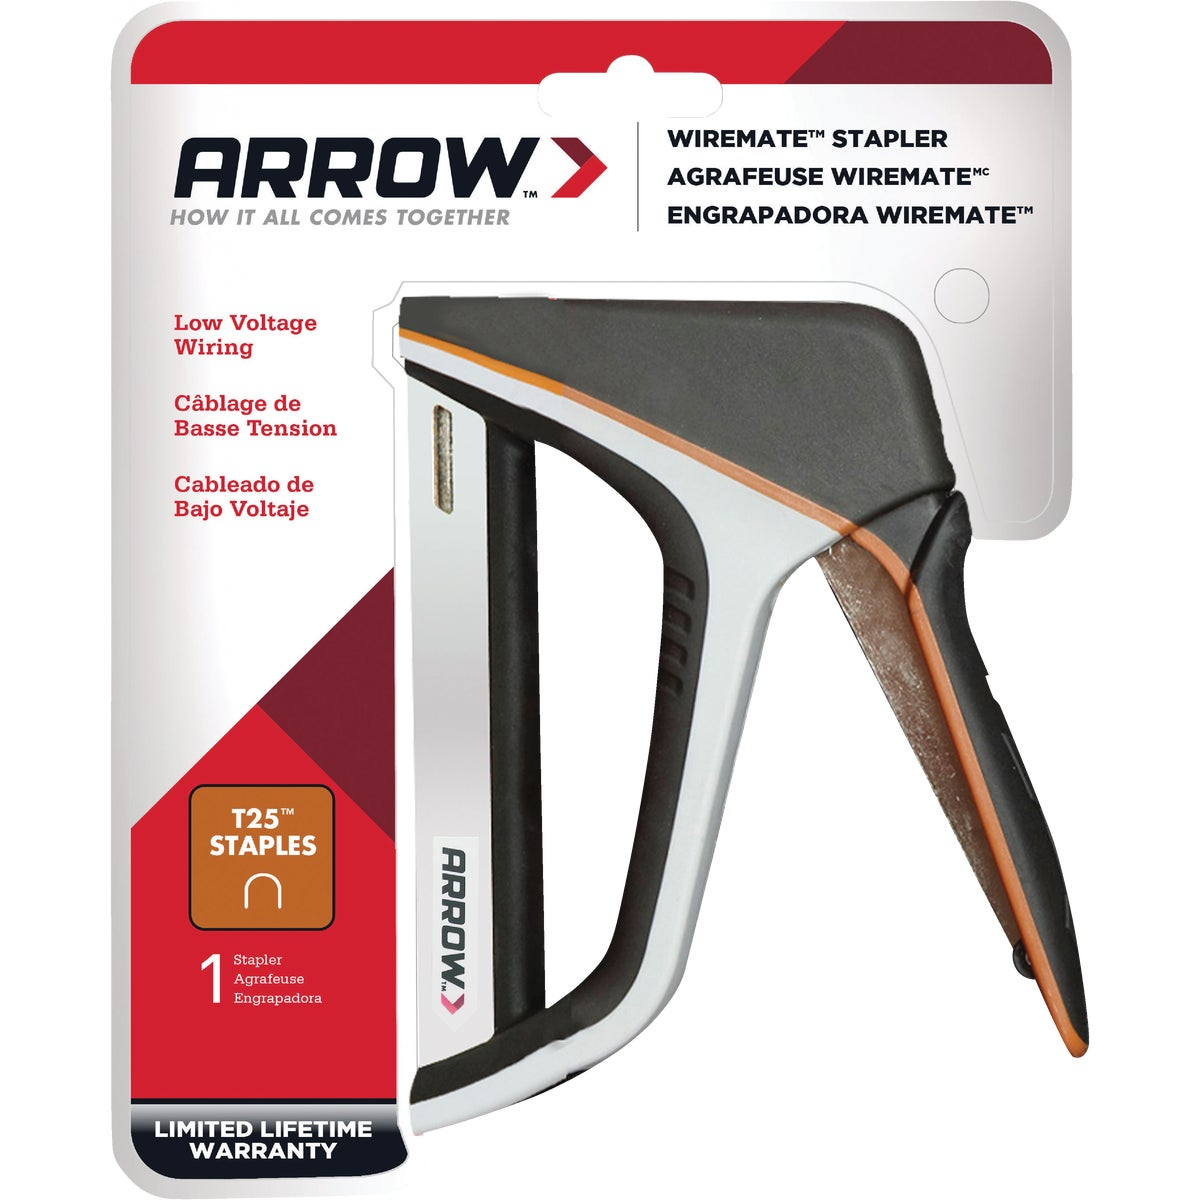 WIREMATE STAPLER - T25X by Arrow Fastener Co